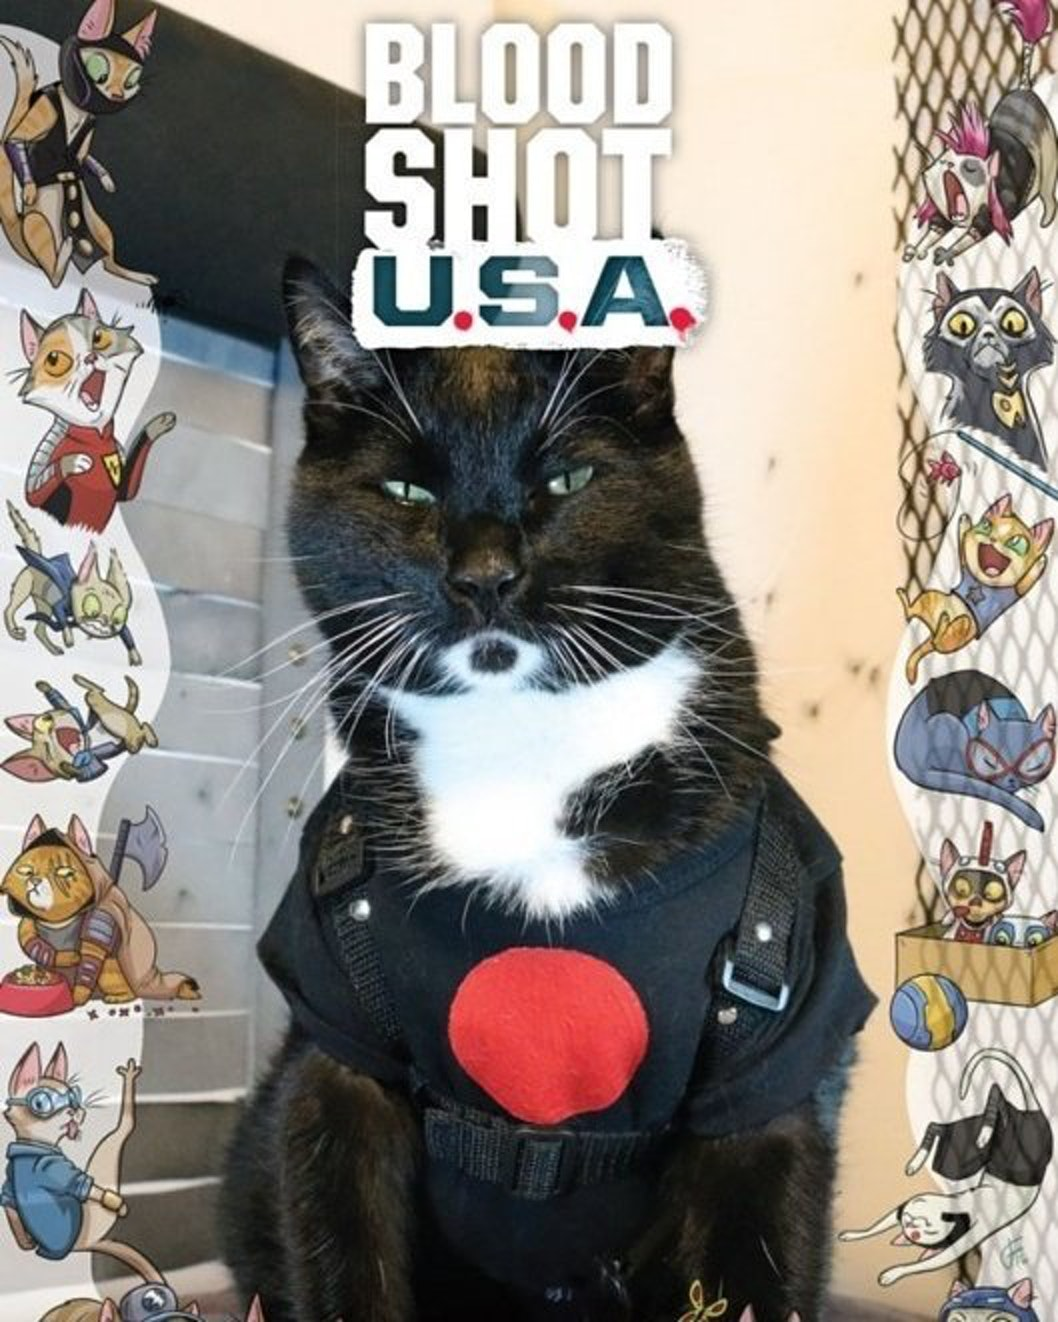 Bloodshot USA Cat Cosplay Variant Cover for Valiant Comics